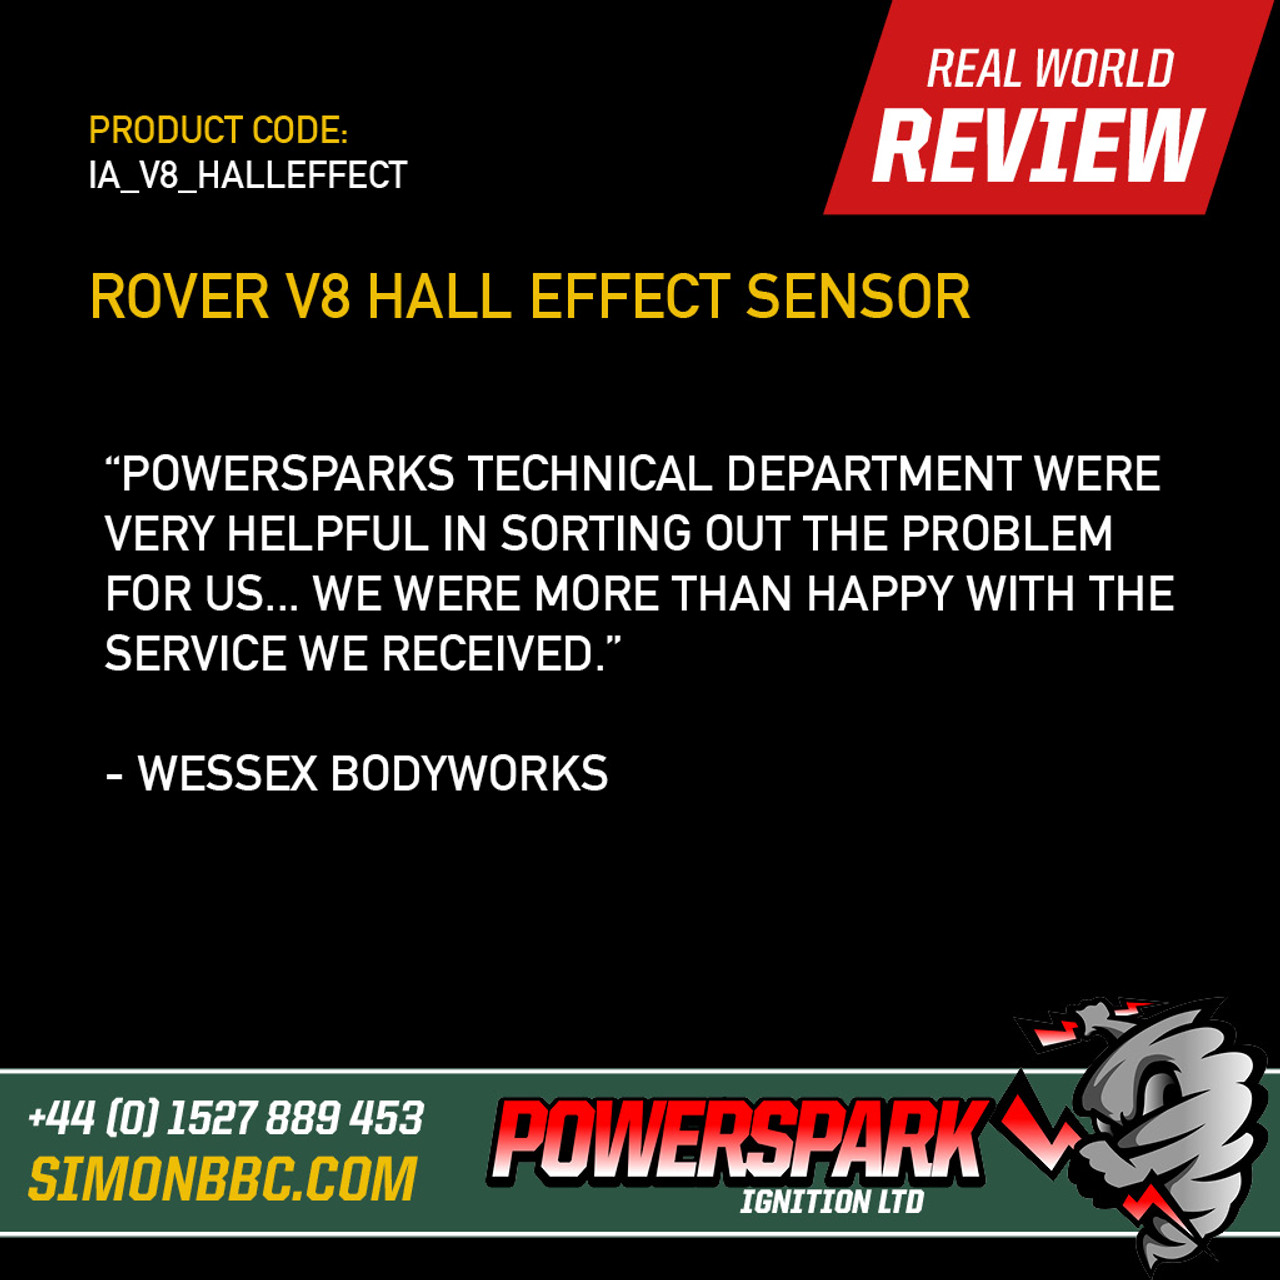 Replacement Rover V8 Hall Effect Sensor